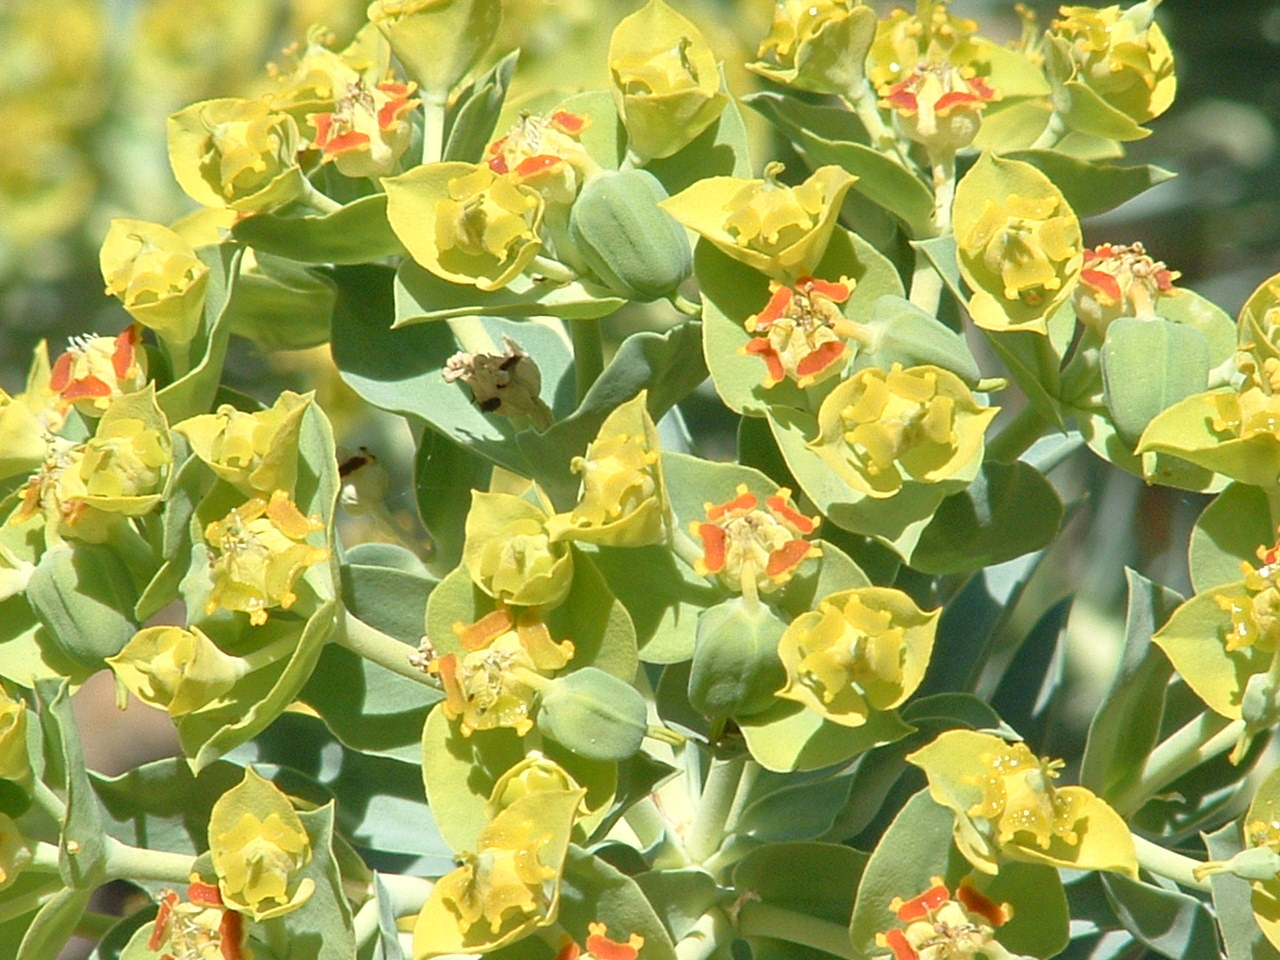 Yellow succulent flowers image collections flower decoration ideas yellow succulent flowers image collections flower decoration ideas yellow succulent flowers choice image flower decoration ideas mightylinksfo